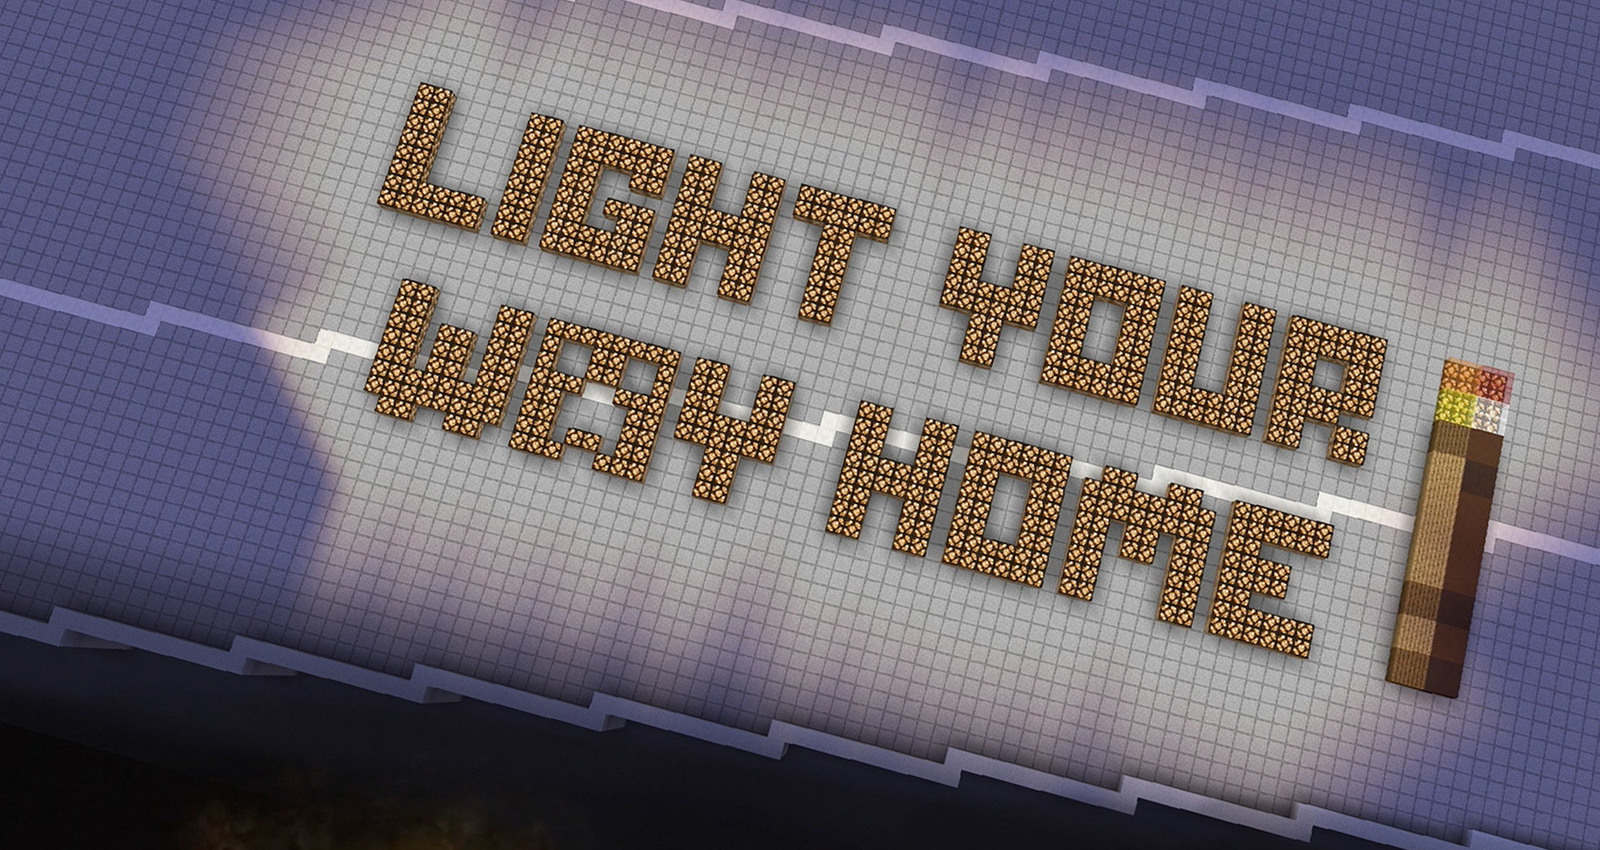 Minecraft: Light Your Way Home